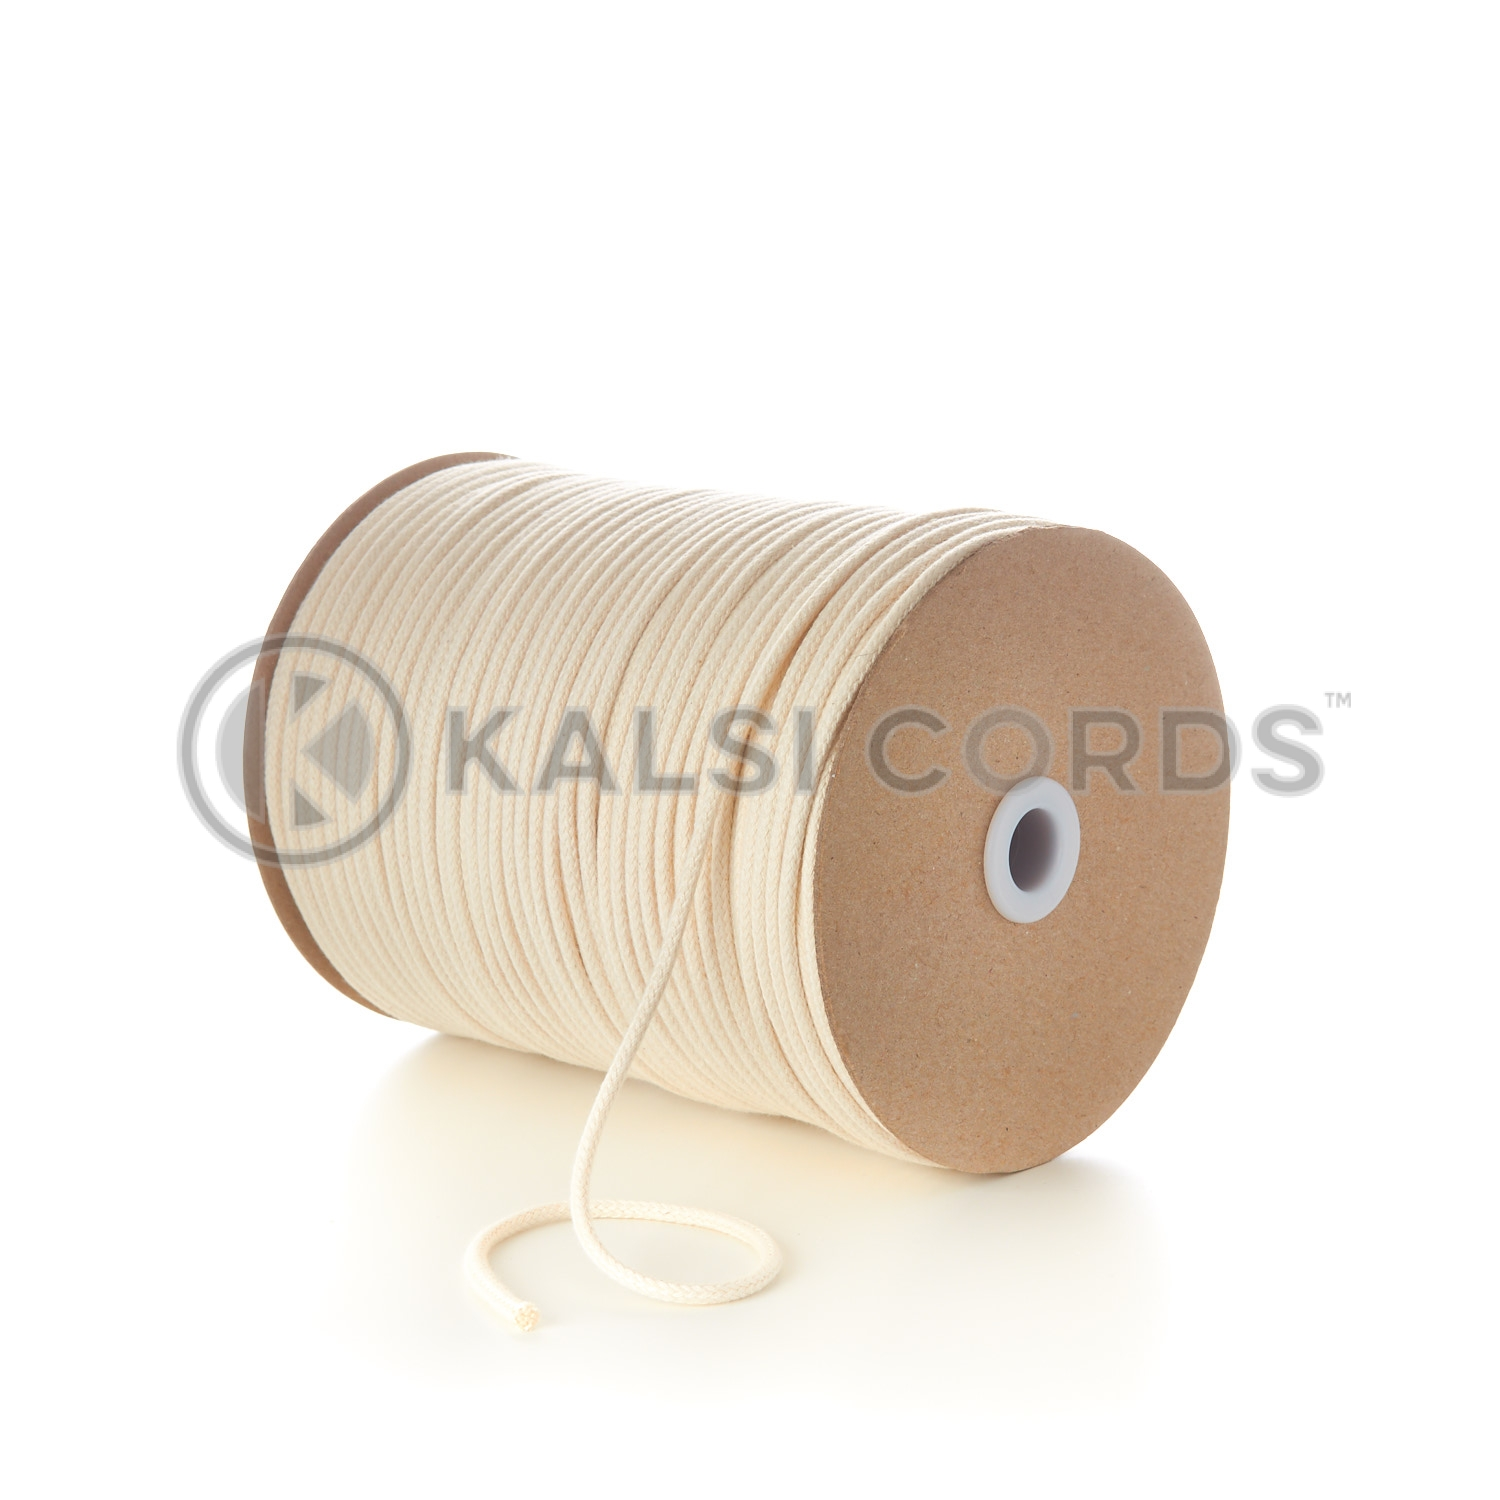 Natural Undyed 4mm Round Cotton Cord Thin Braided String Piping Cushion Edging C223 Kalsi Cords